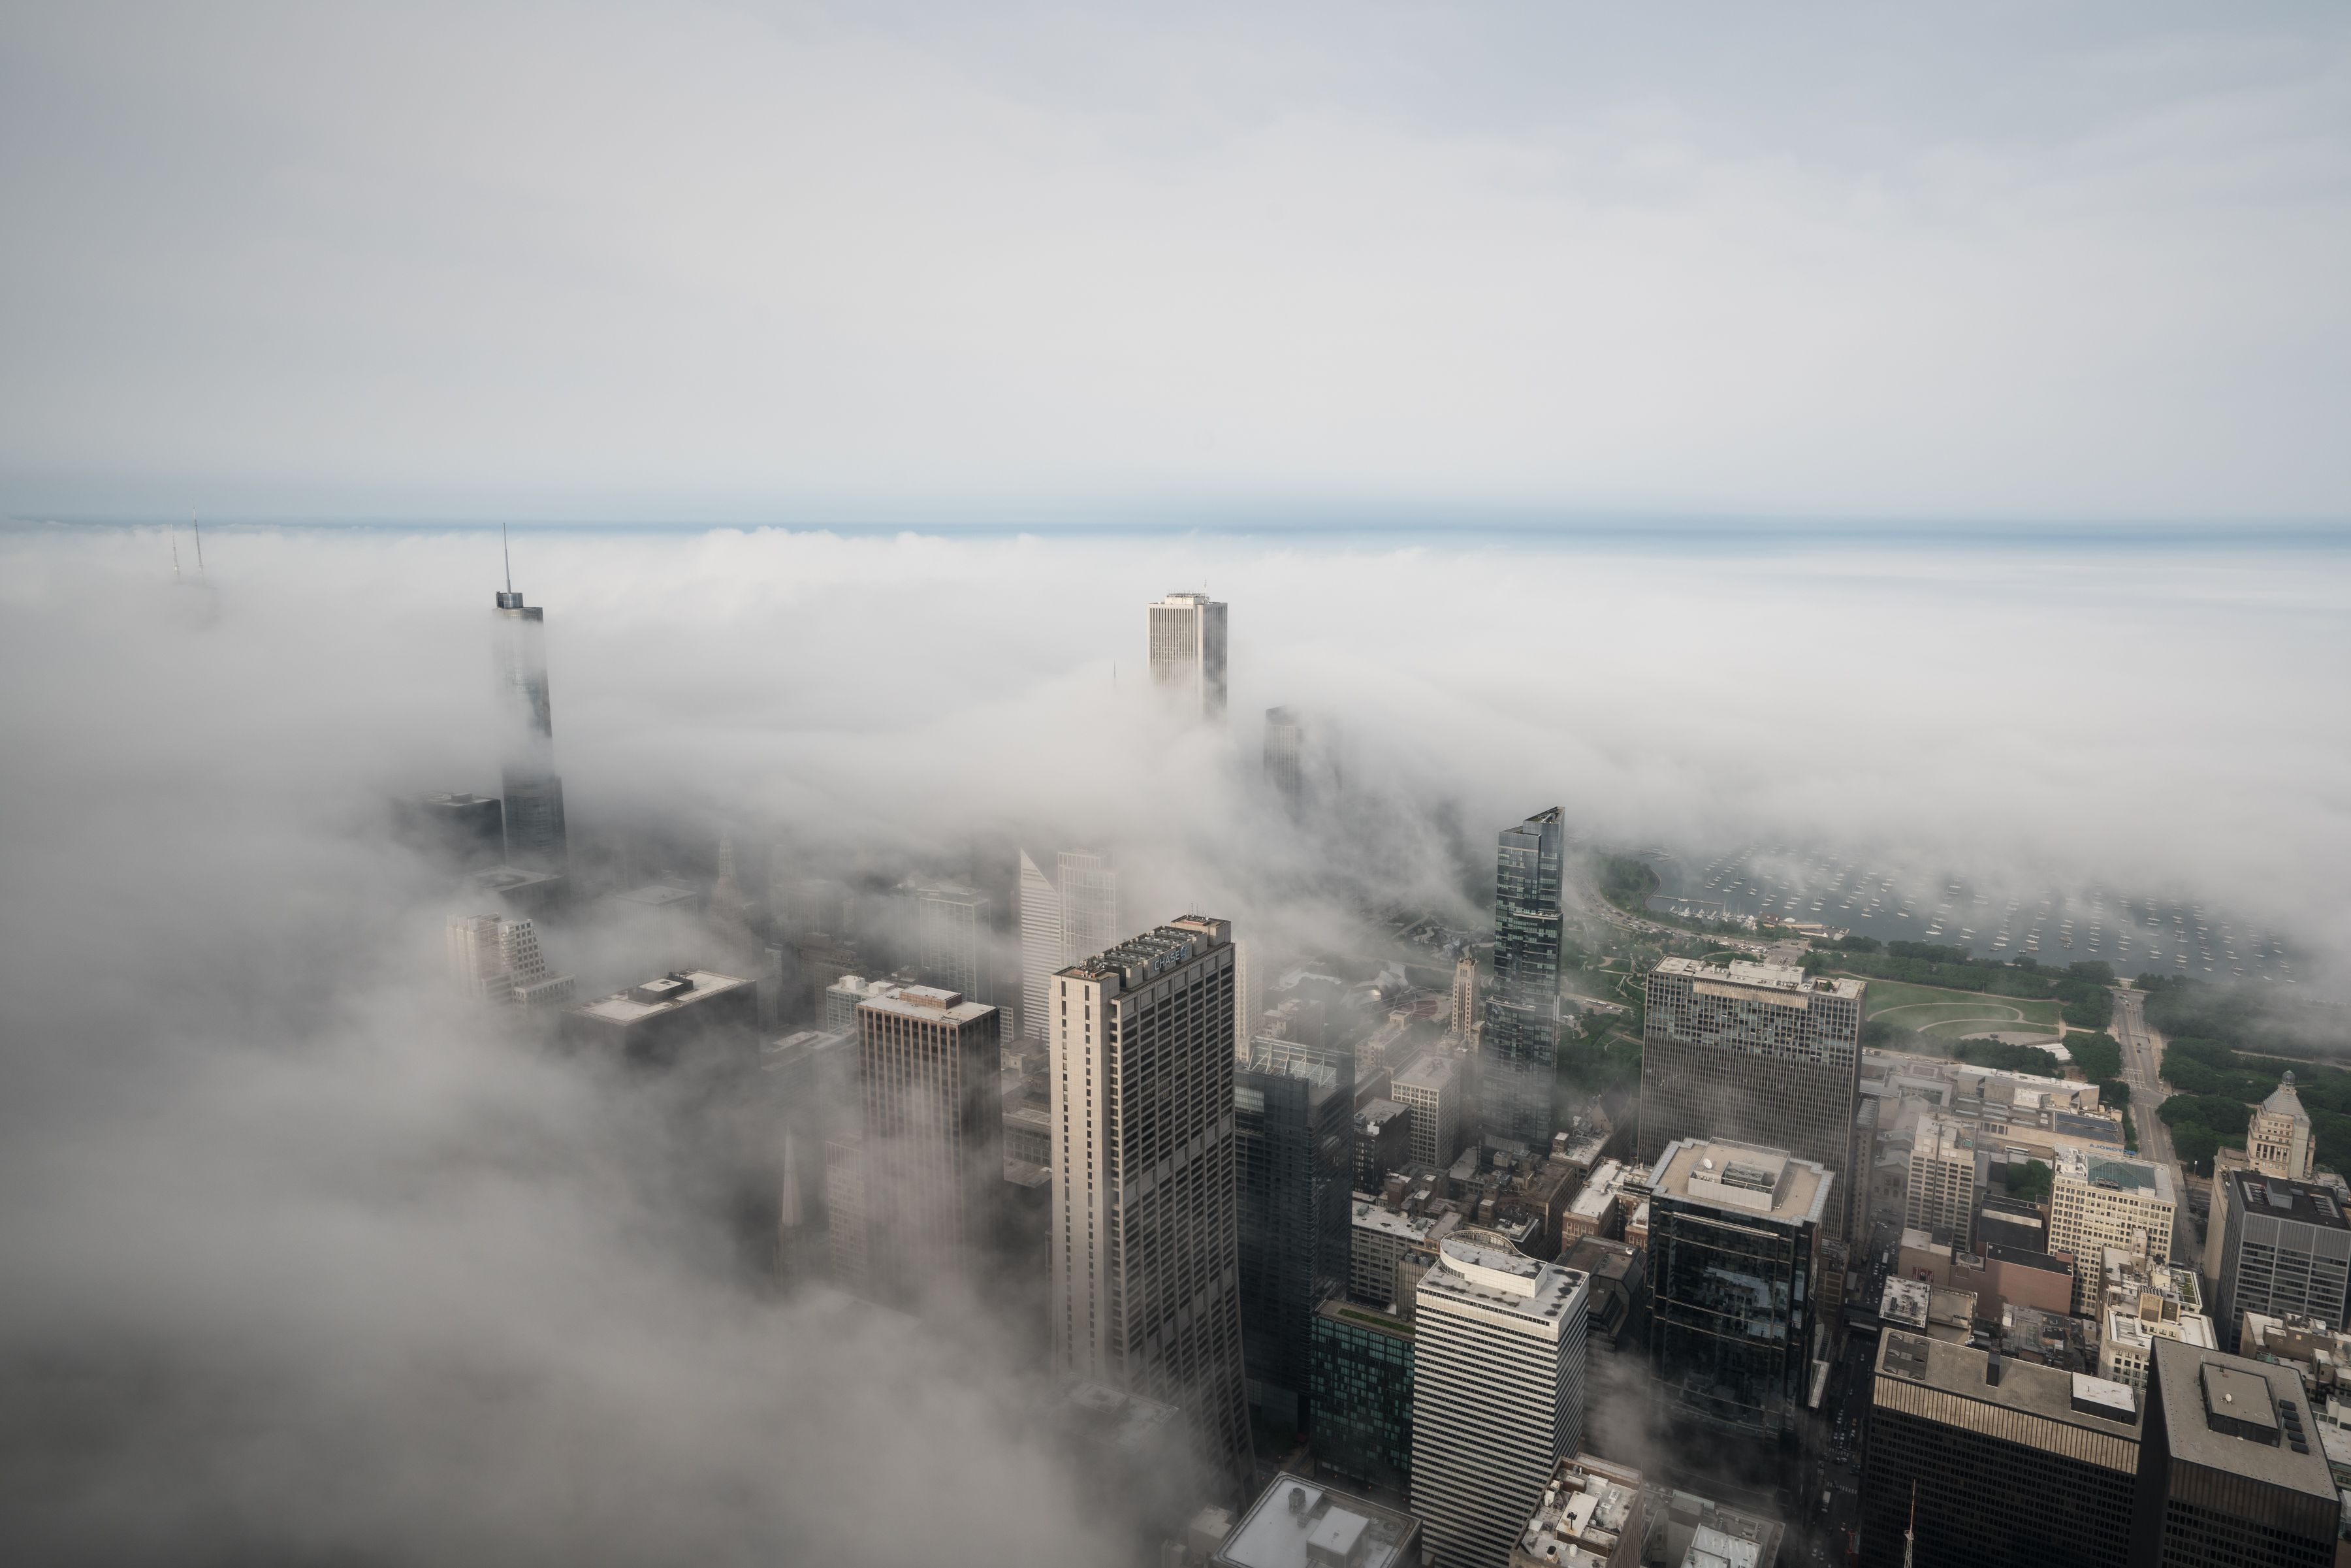 Tatyana Perreault captures the fog grazing the Chicago skyscrapers